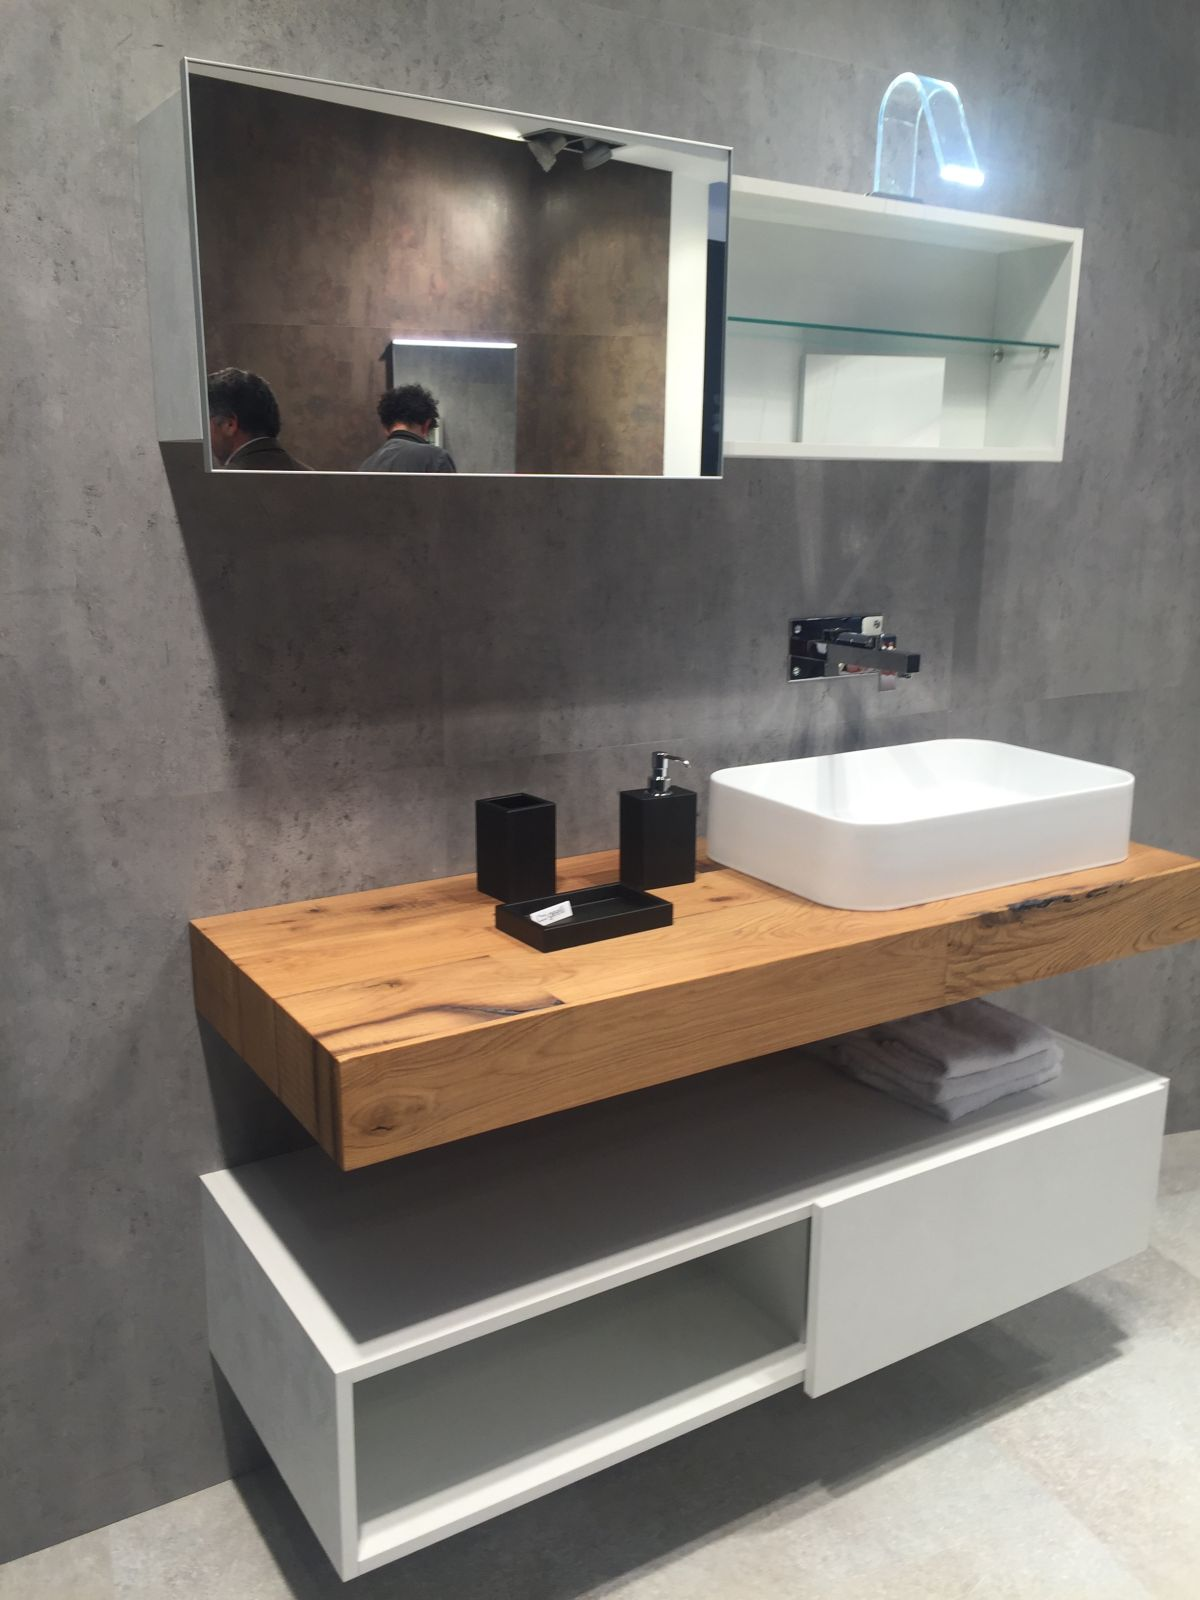 Stylish ways to decorate with modern bathroom vanities for Planche inox cuisine